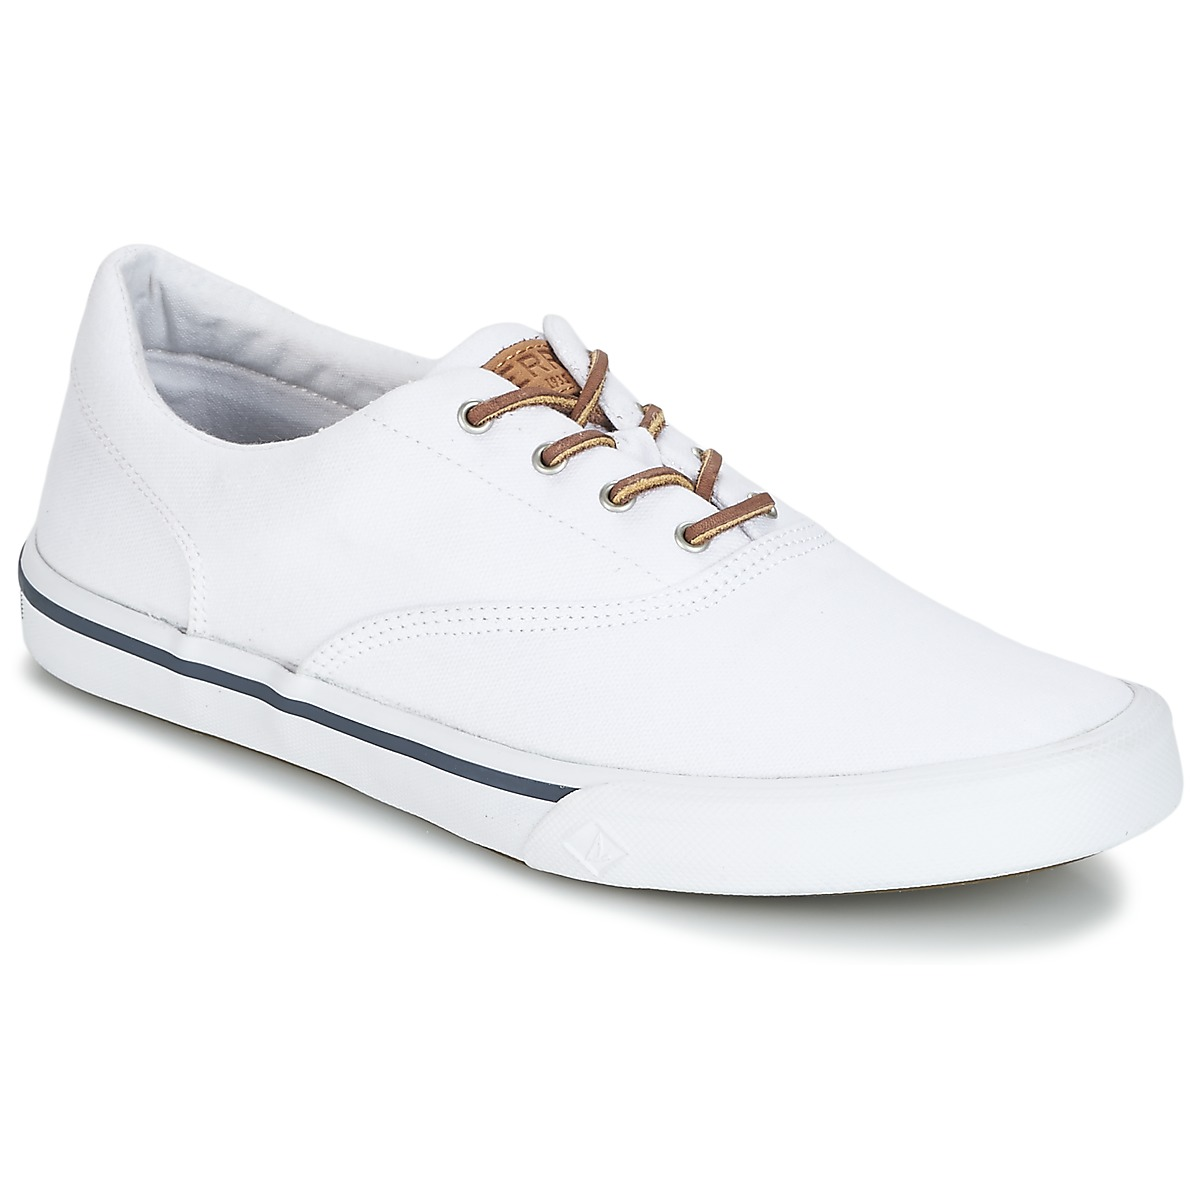 Sneakers Sperry Top-Sider  STRIPER II CVO WASHED